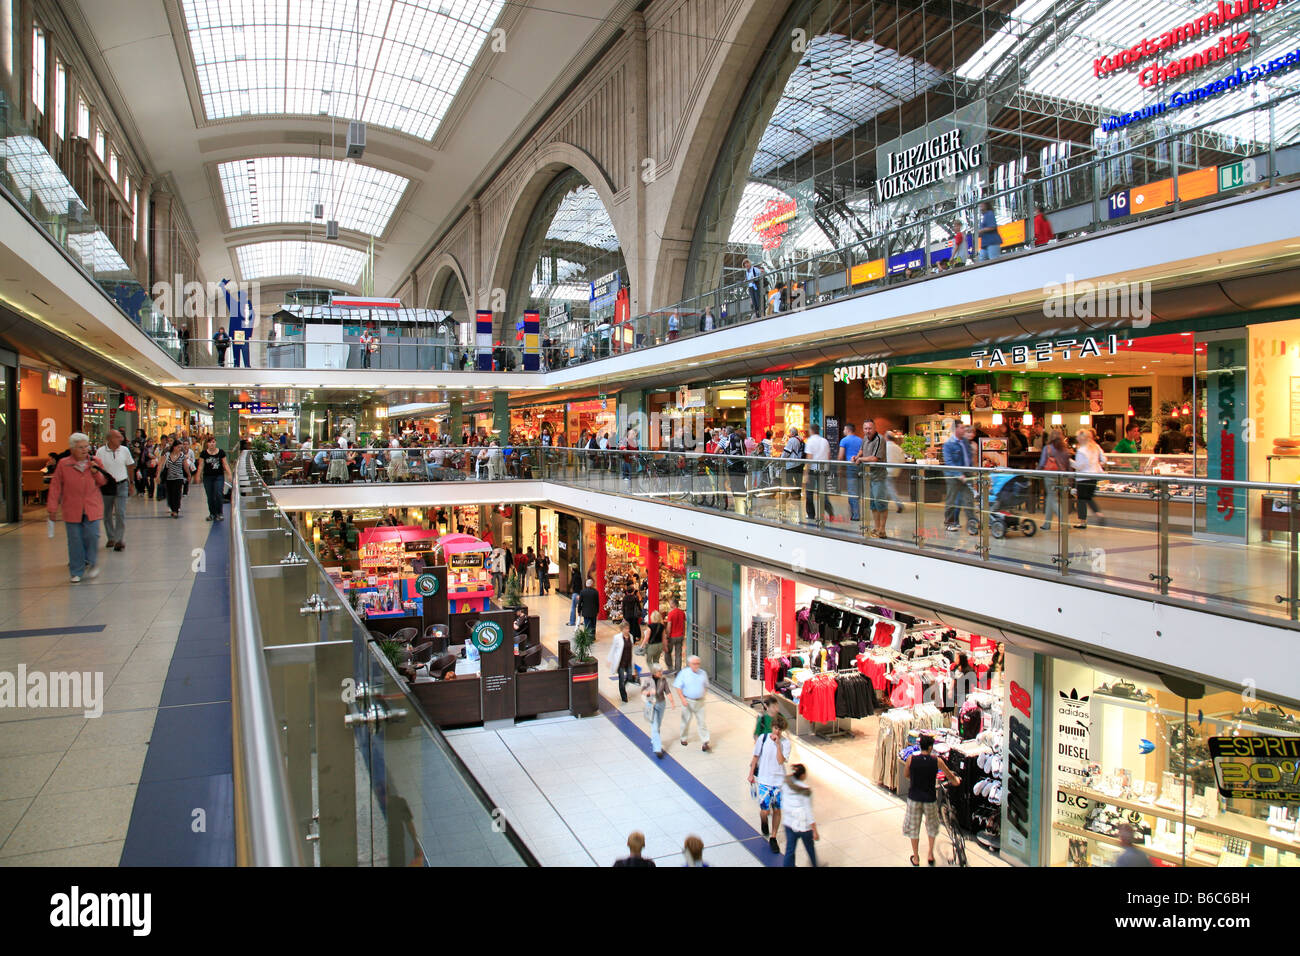 shopping mile 39 promenaden 39 in the central station of leipzig germany stock photo royalty free. Black Bedroom Furniture Sets. Home Design Ideas